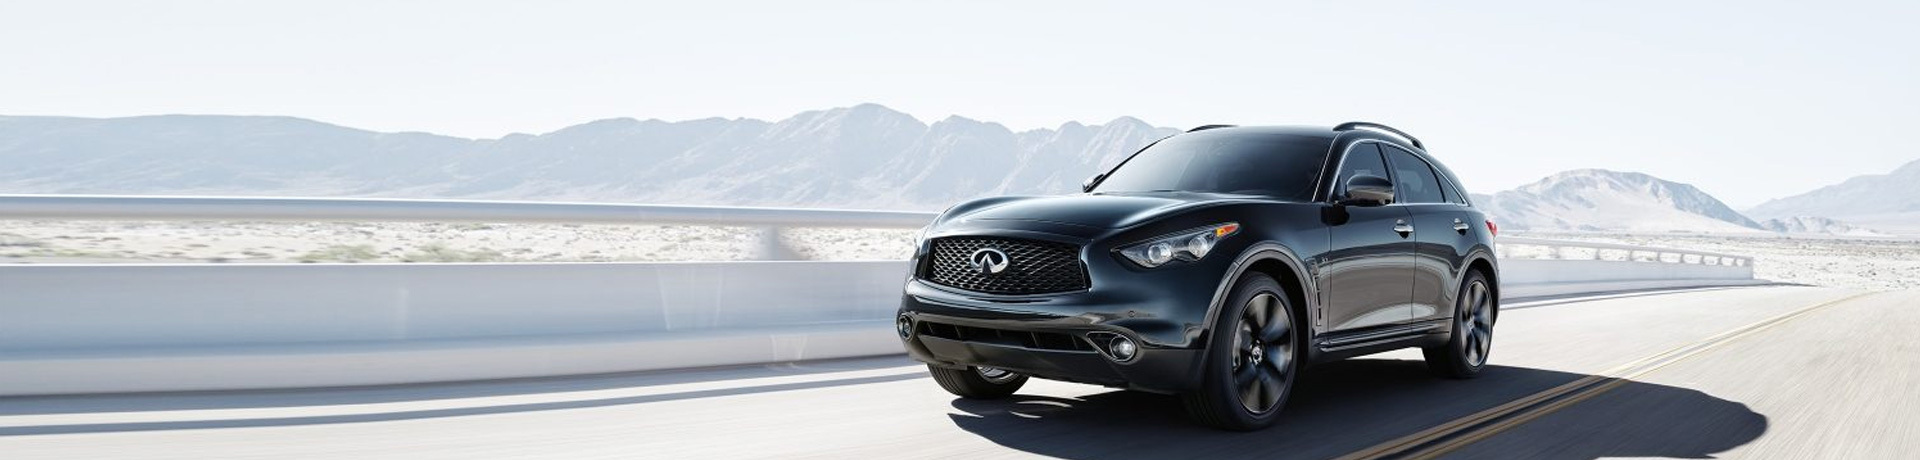 The Infiniti QX70S. Incredible Power,  Captivating Beauty